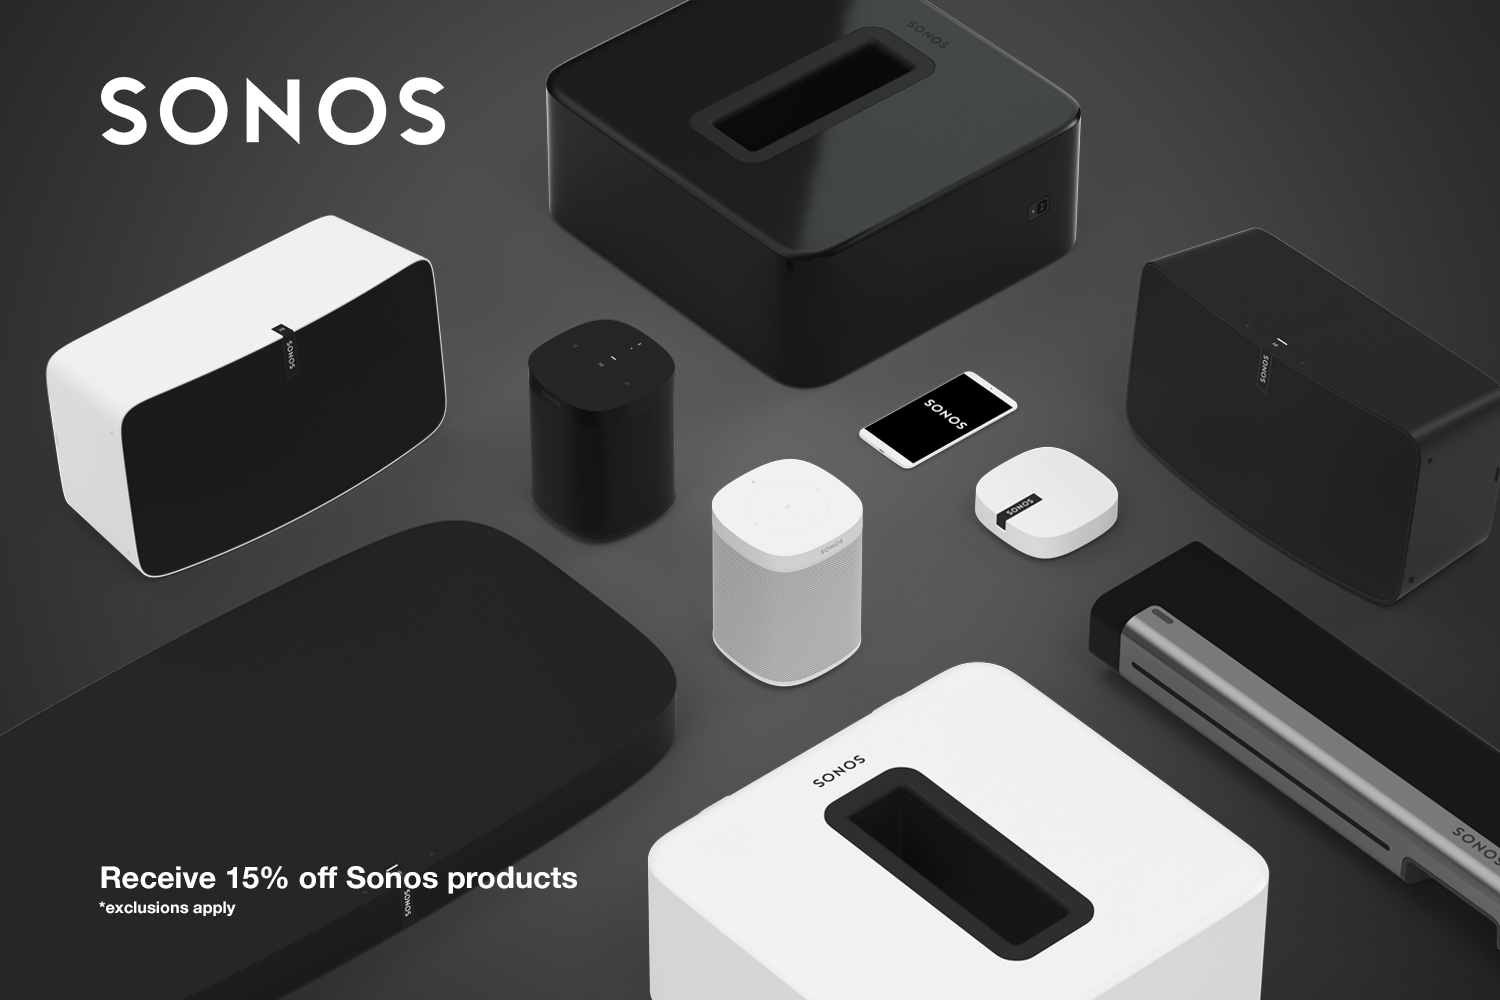 New partnership and discount scheme with Sonos